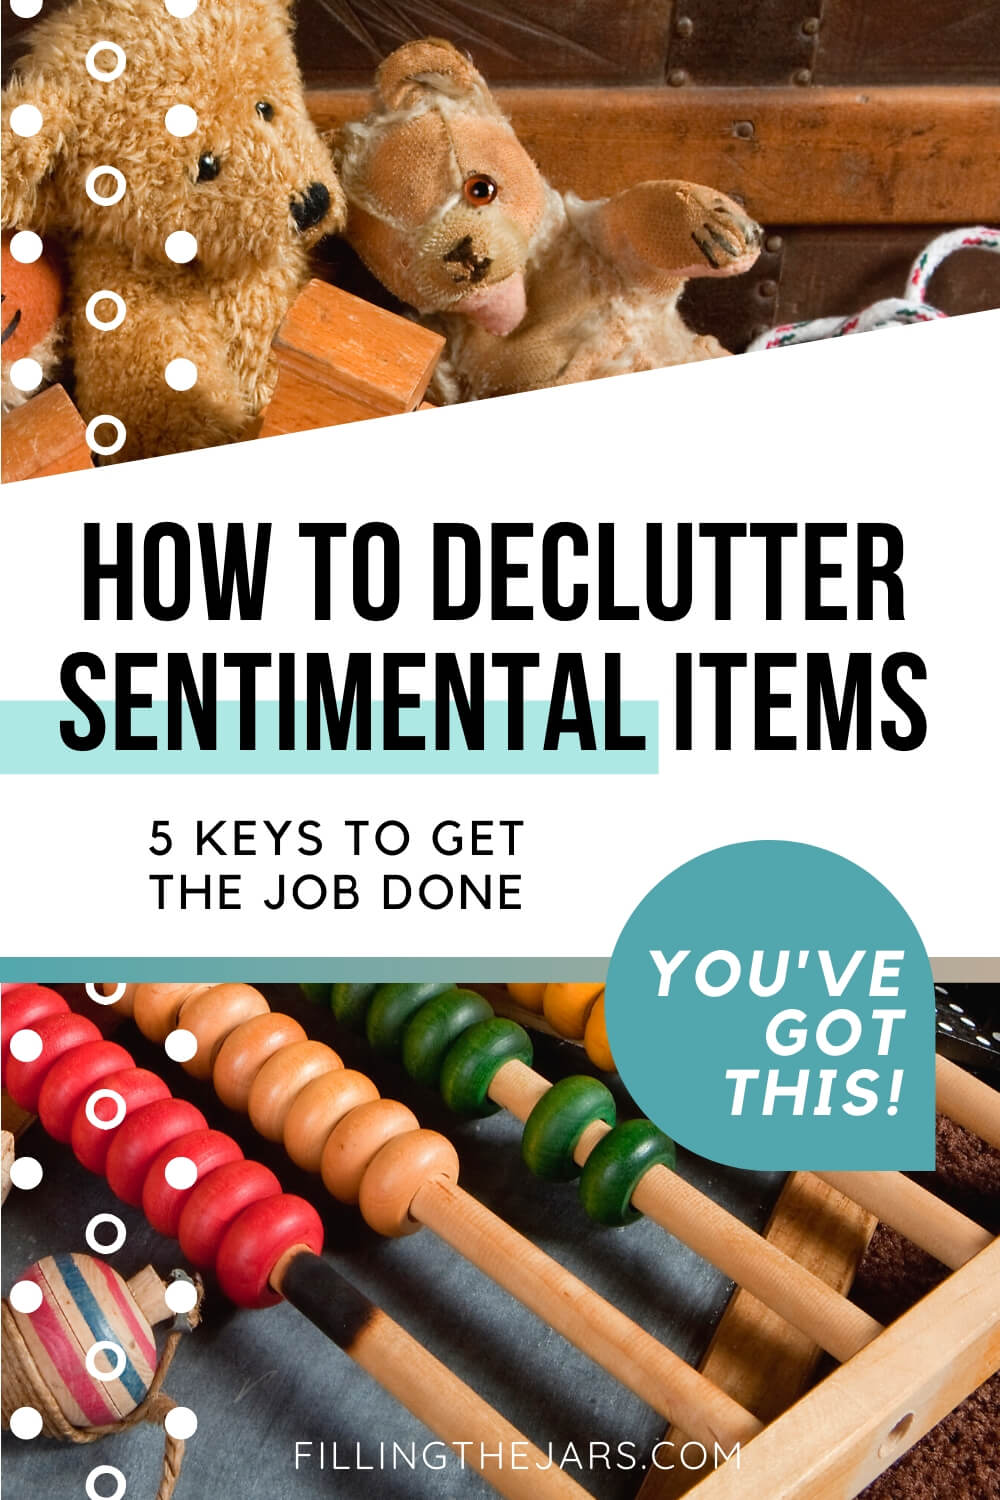 teddy bears and toys with text overlay how to declutter sentimental items